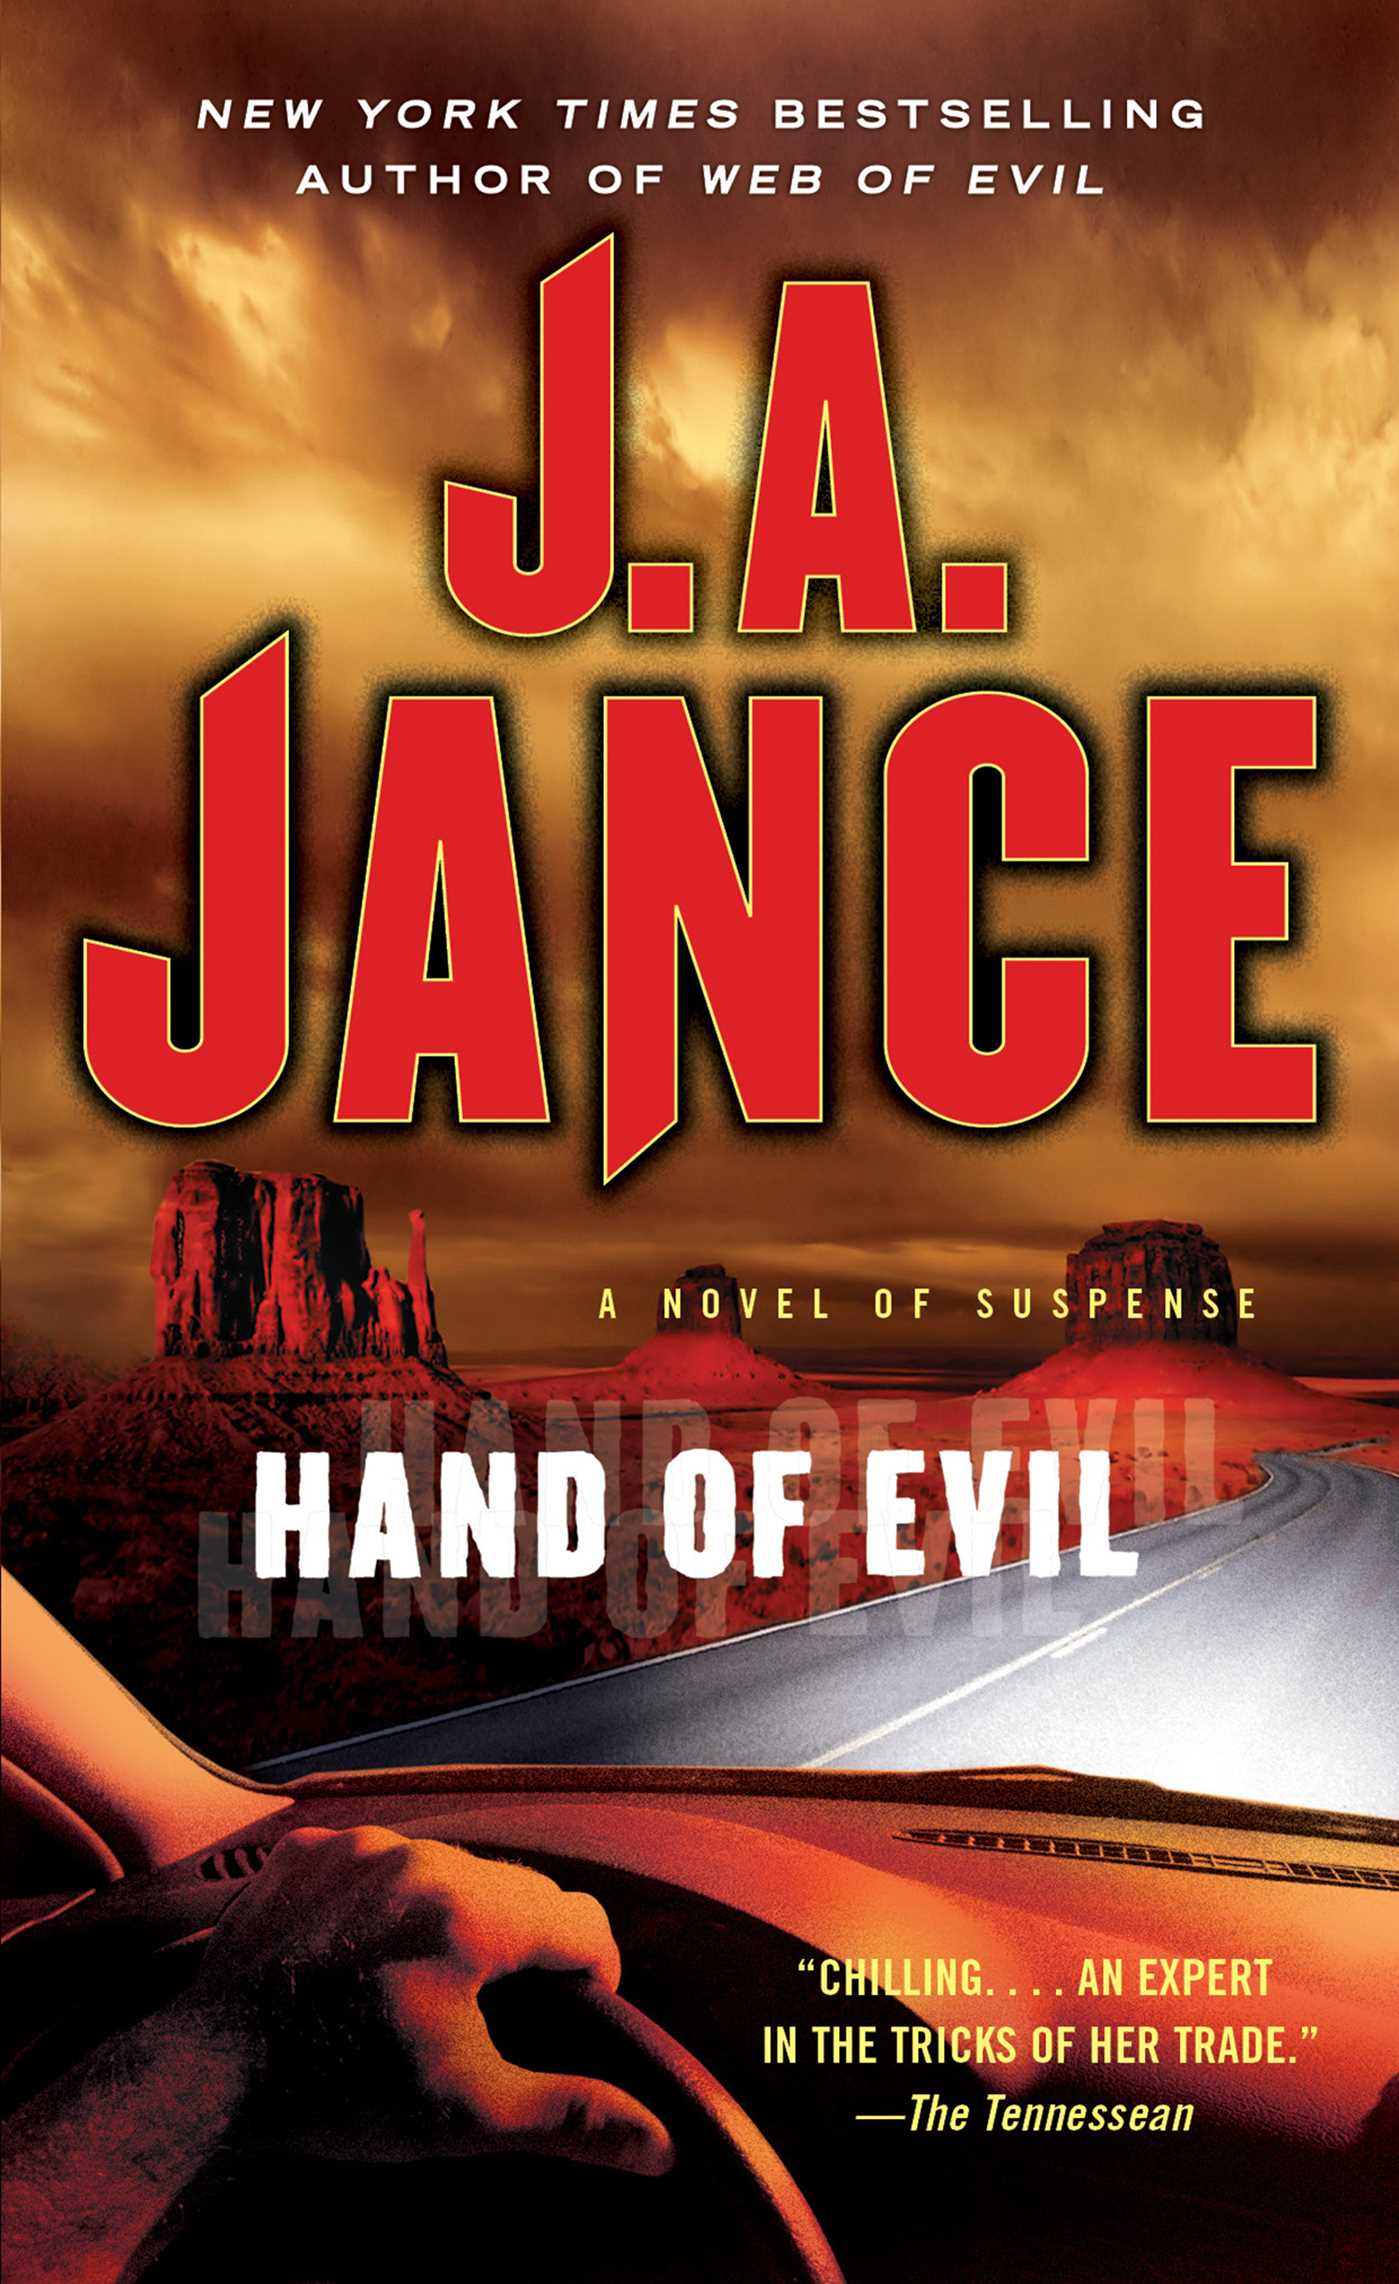 Hand of evil 9781416537748 hr